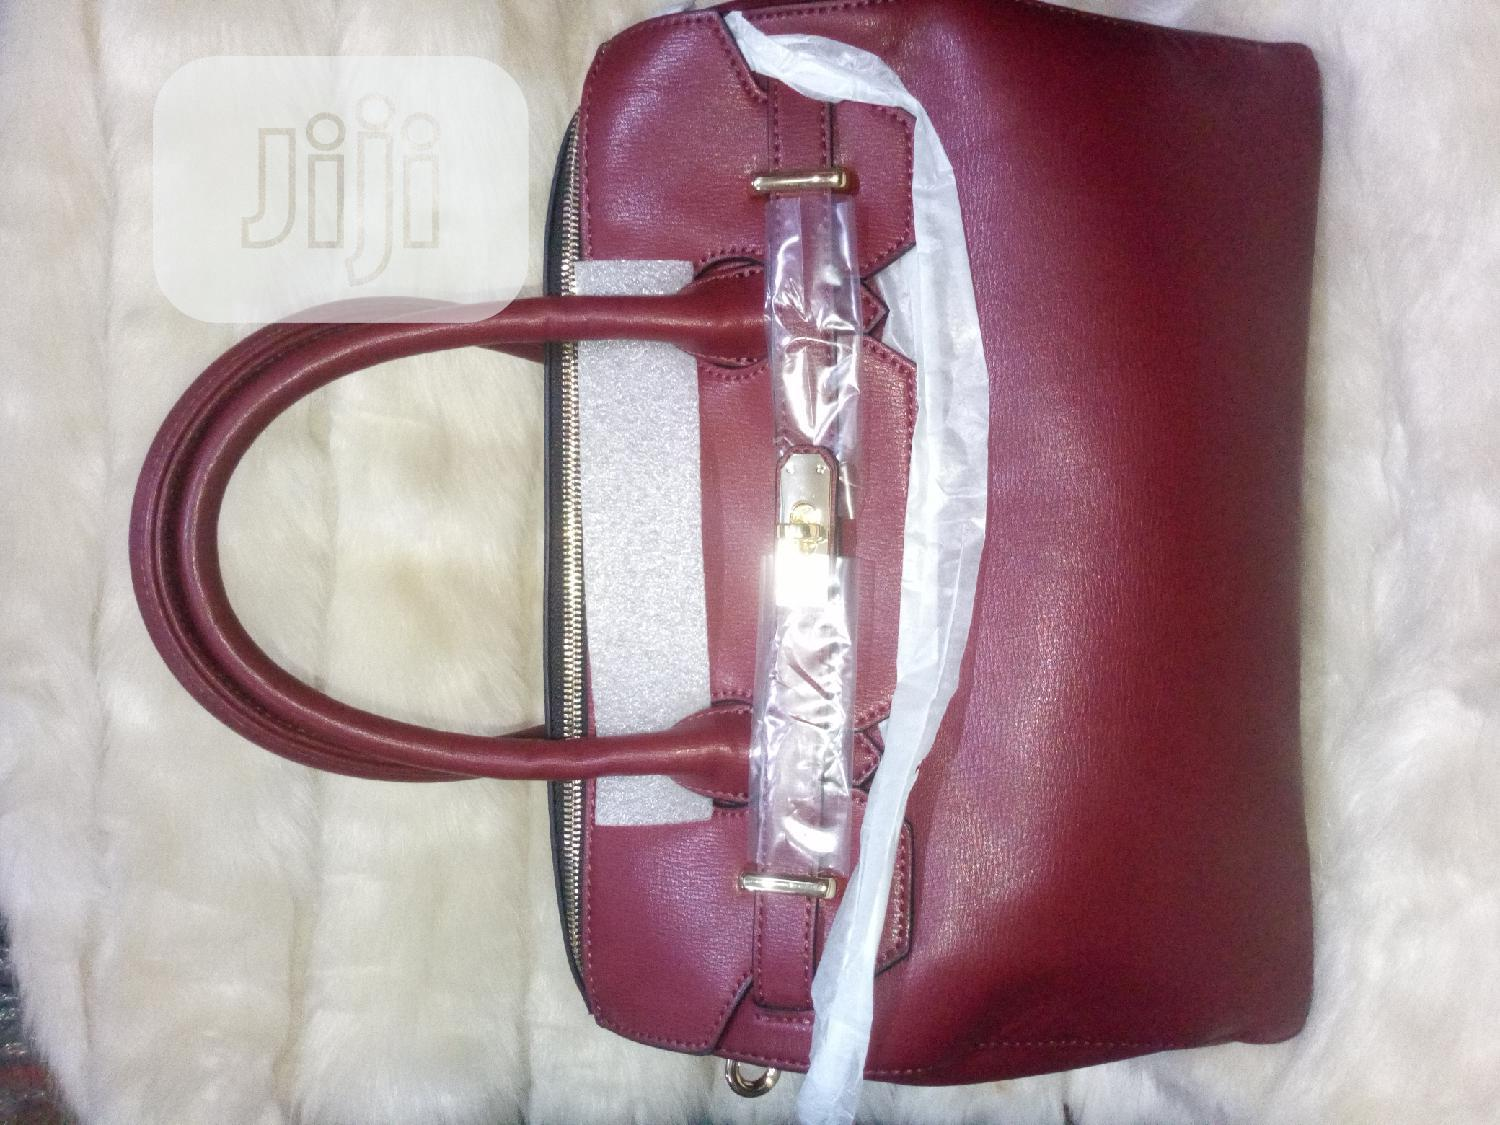 High Quality Susen Leather Bag